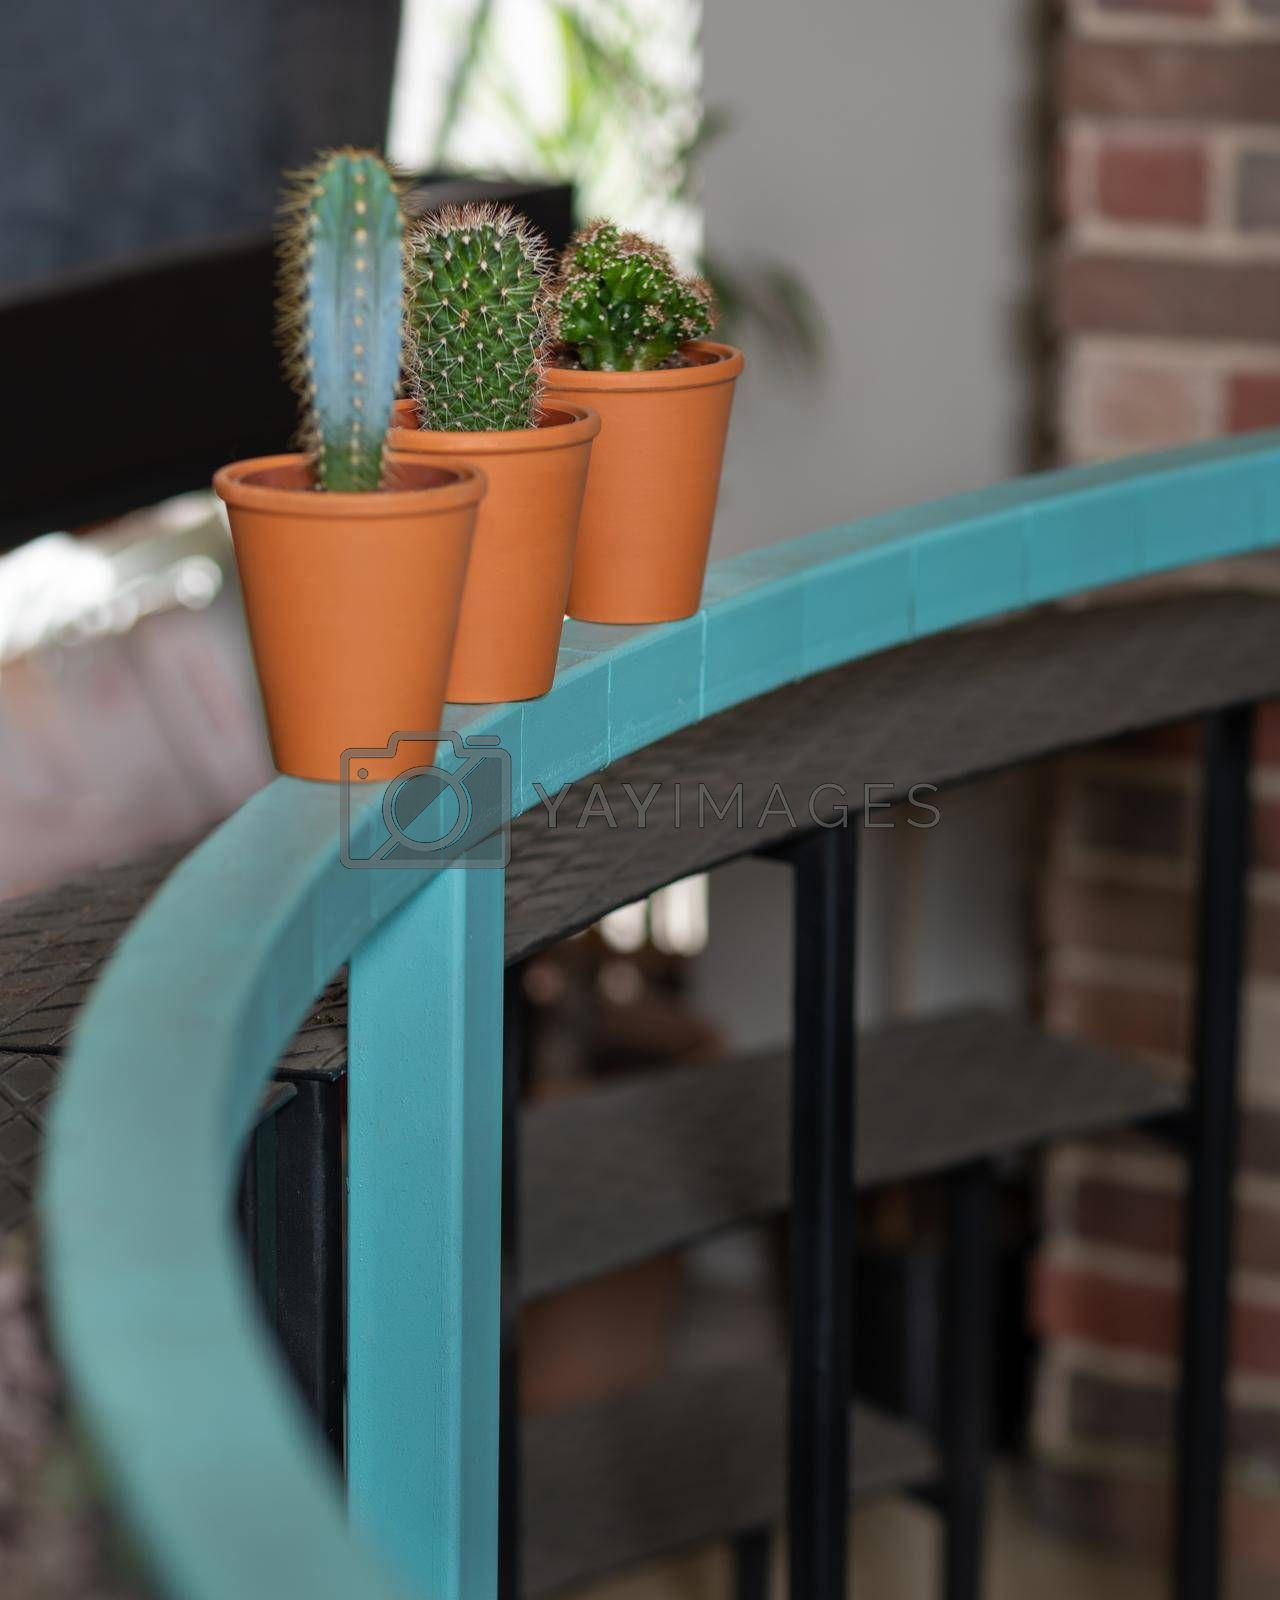 Small cactuses side by side